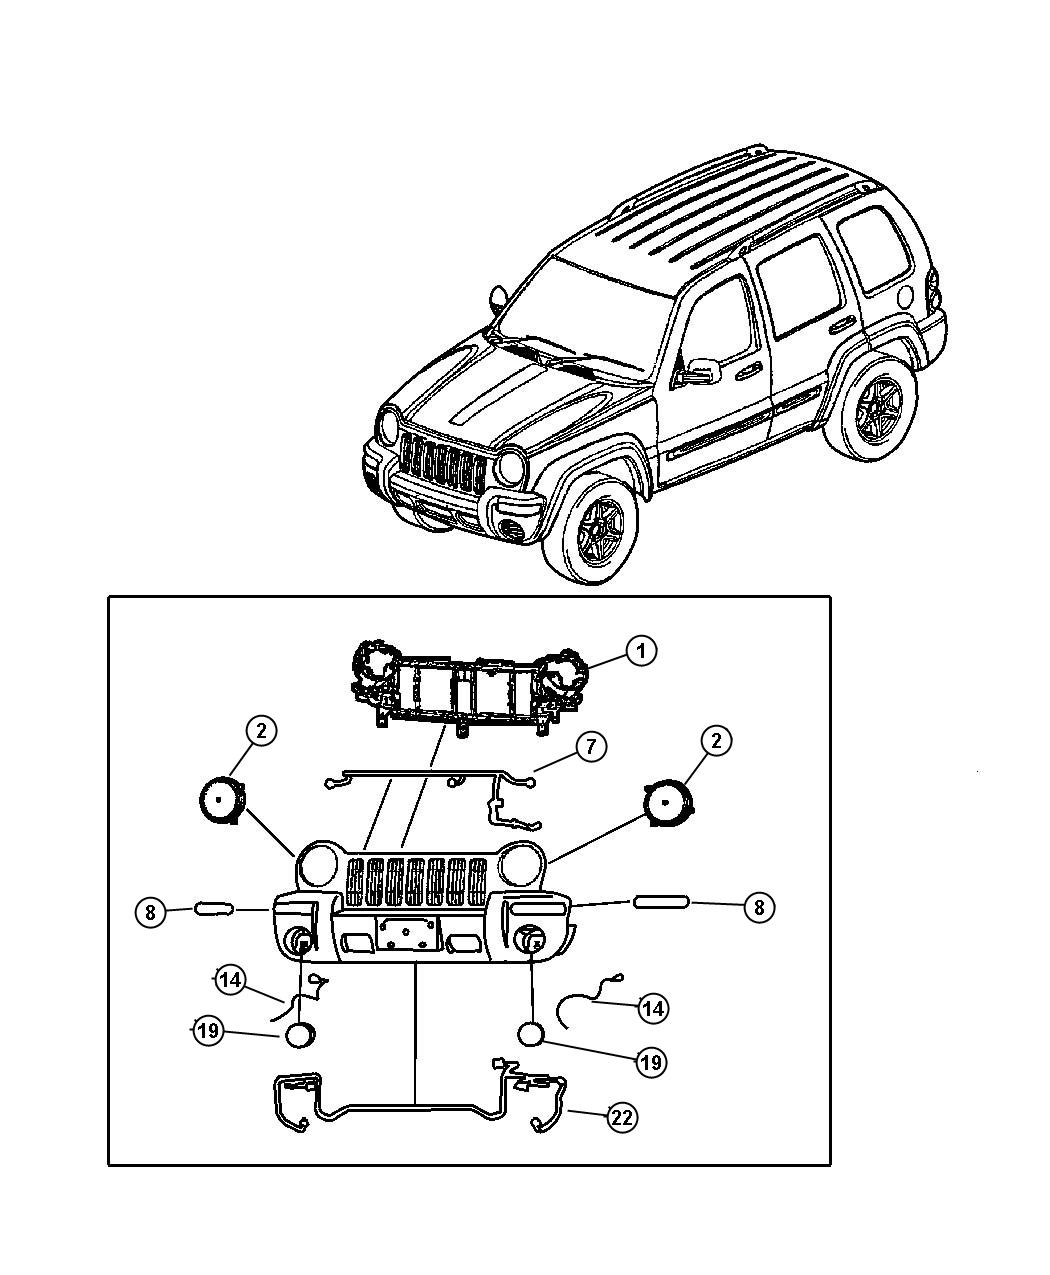 Jeep Liberty Reinforcement. Grille opening. Computer